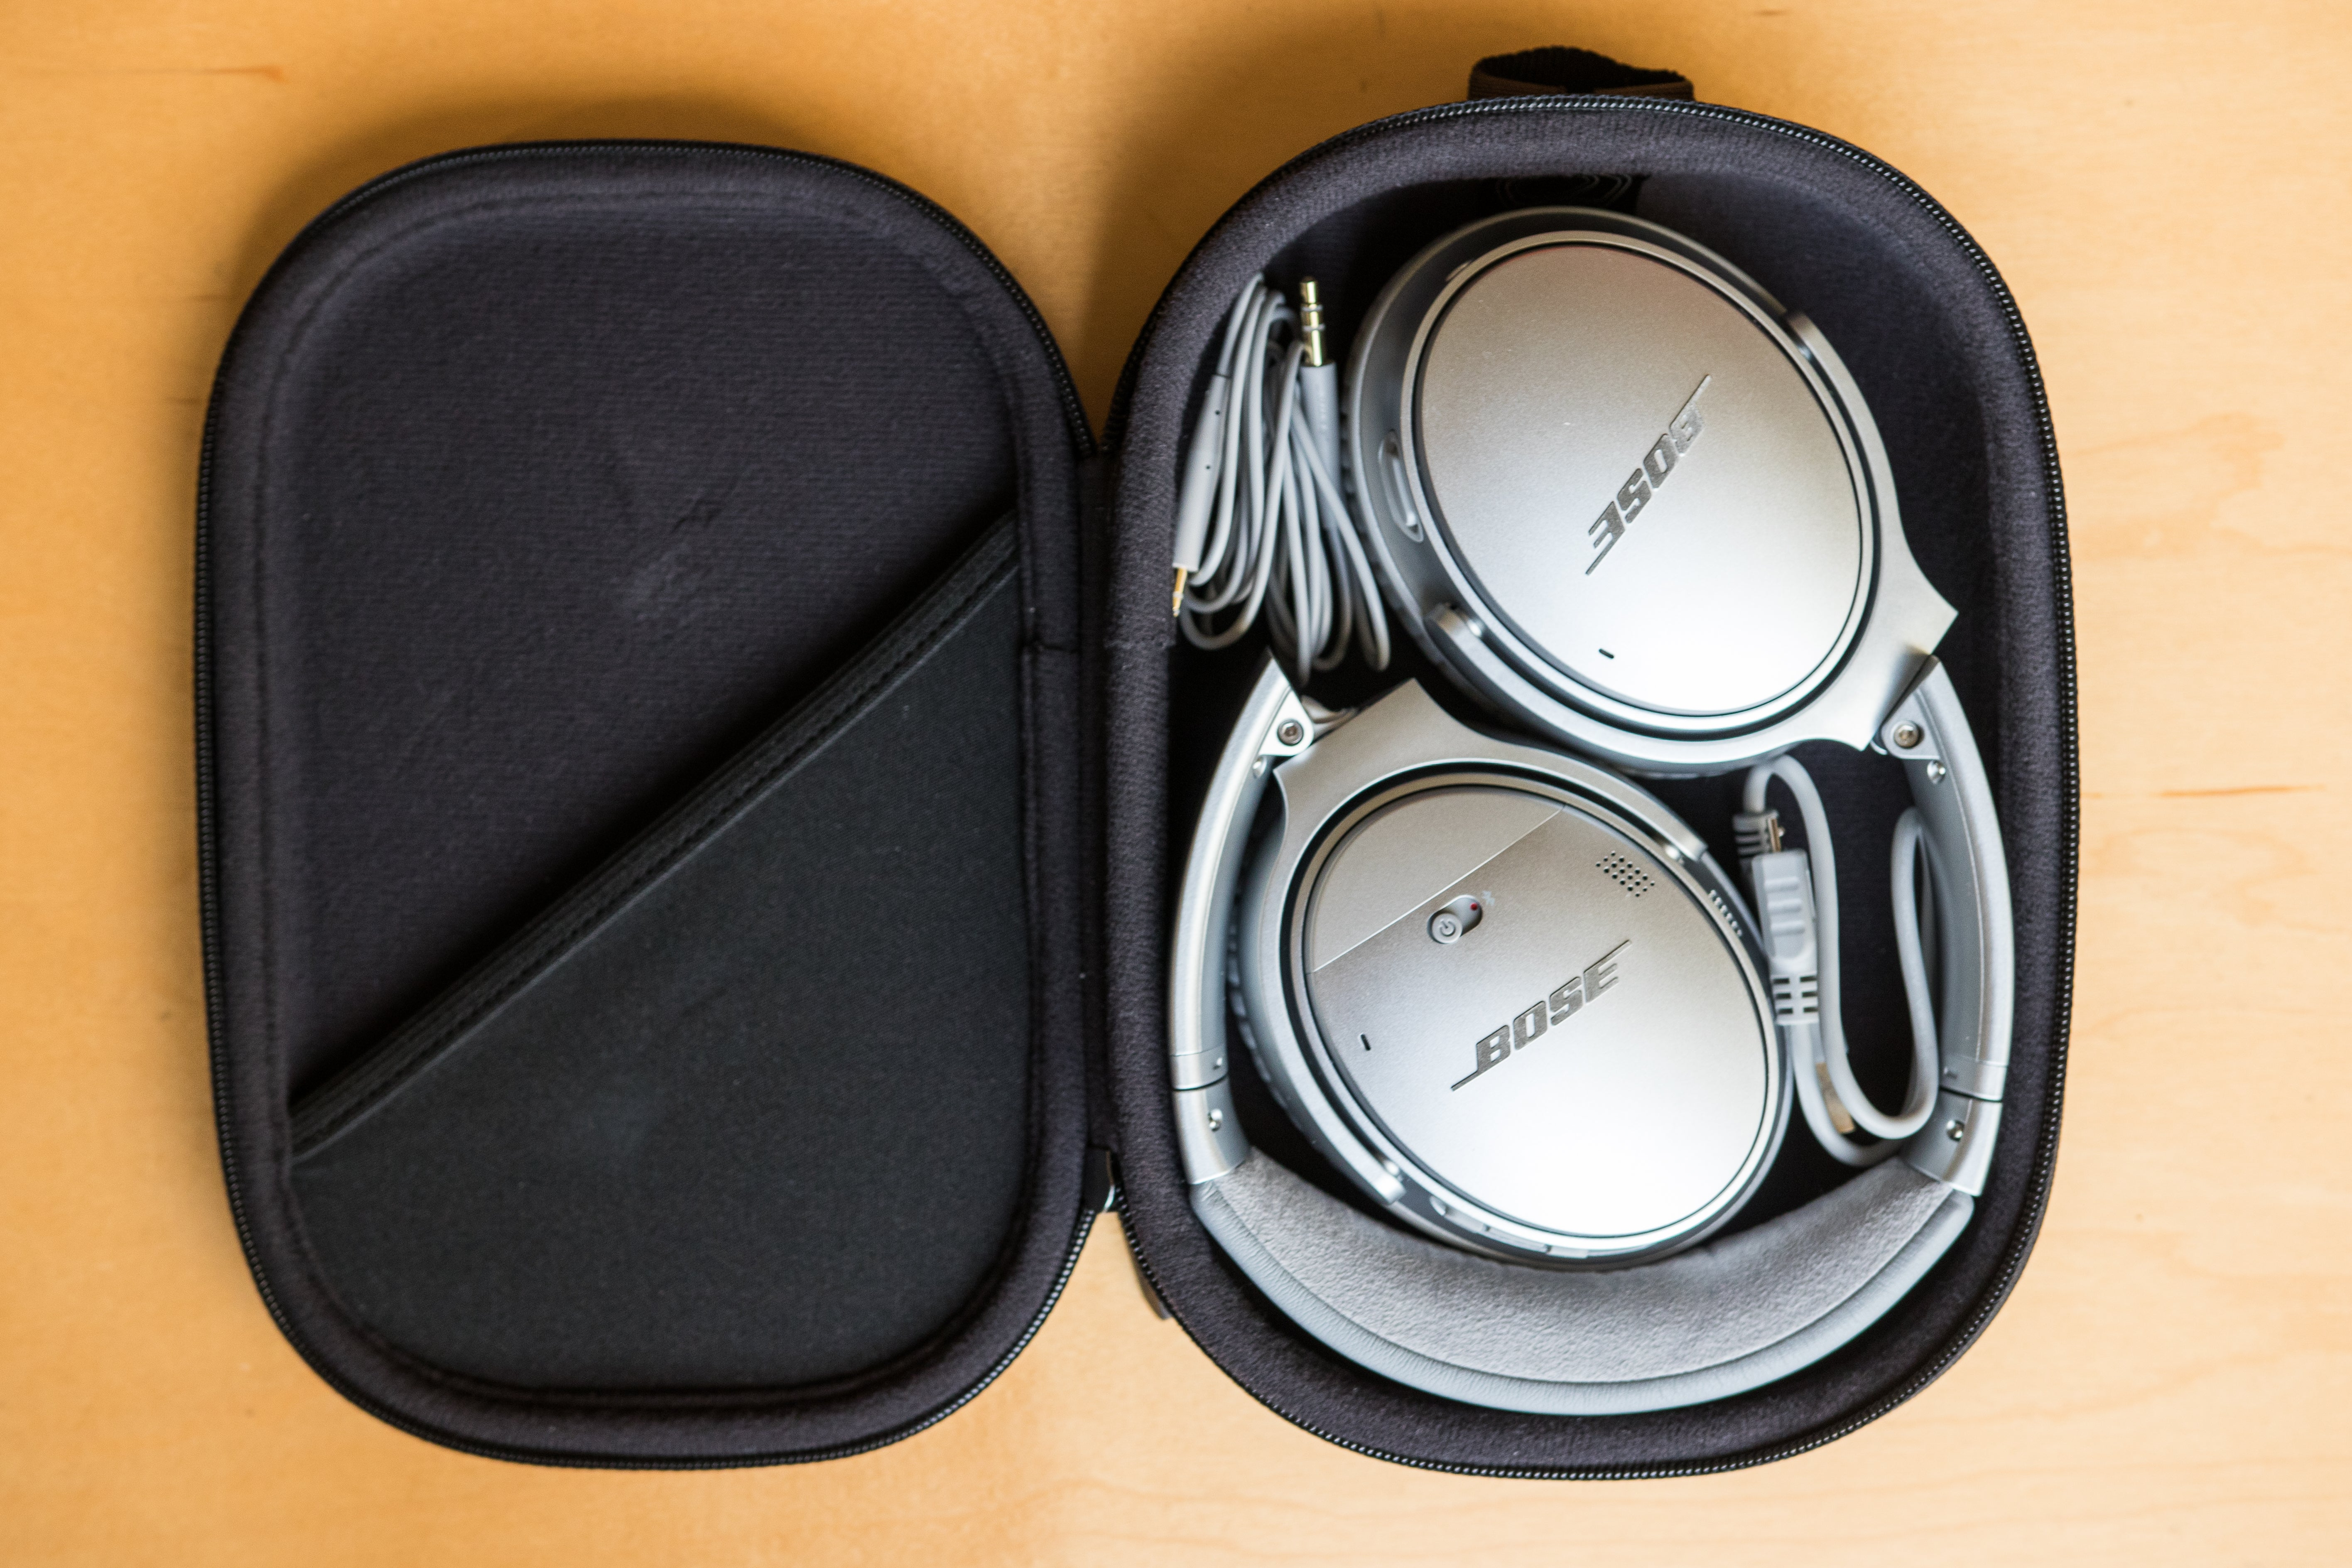 The QC35 II in their carrying case